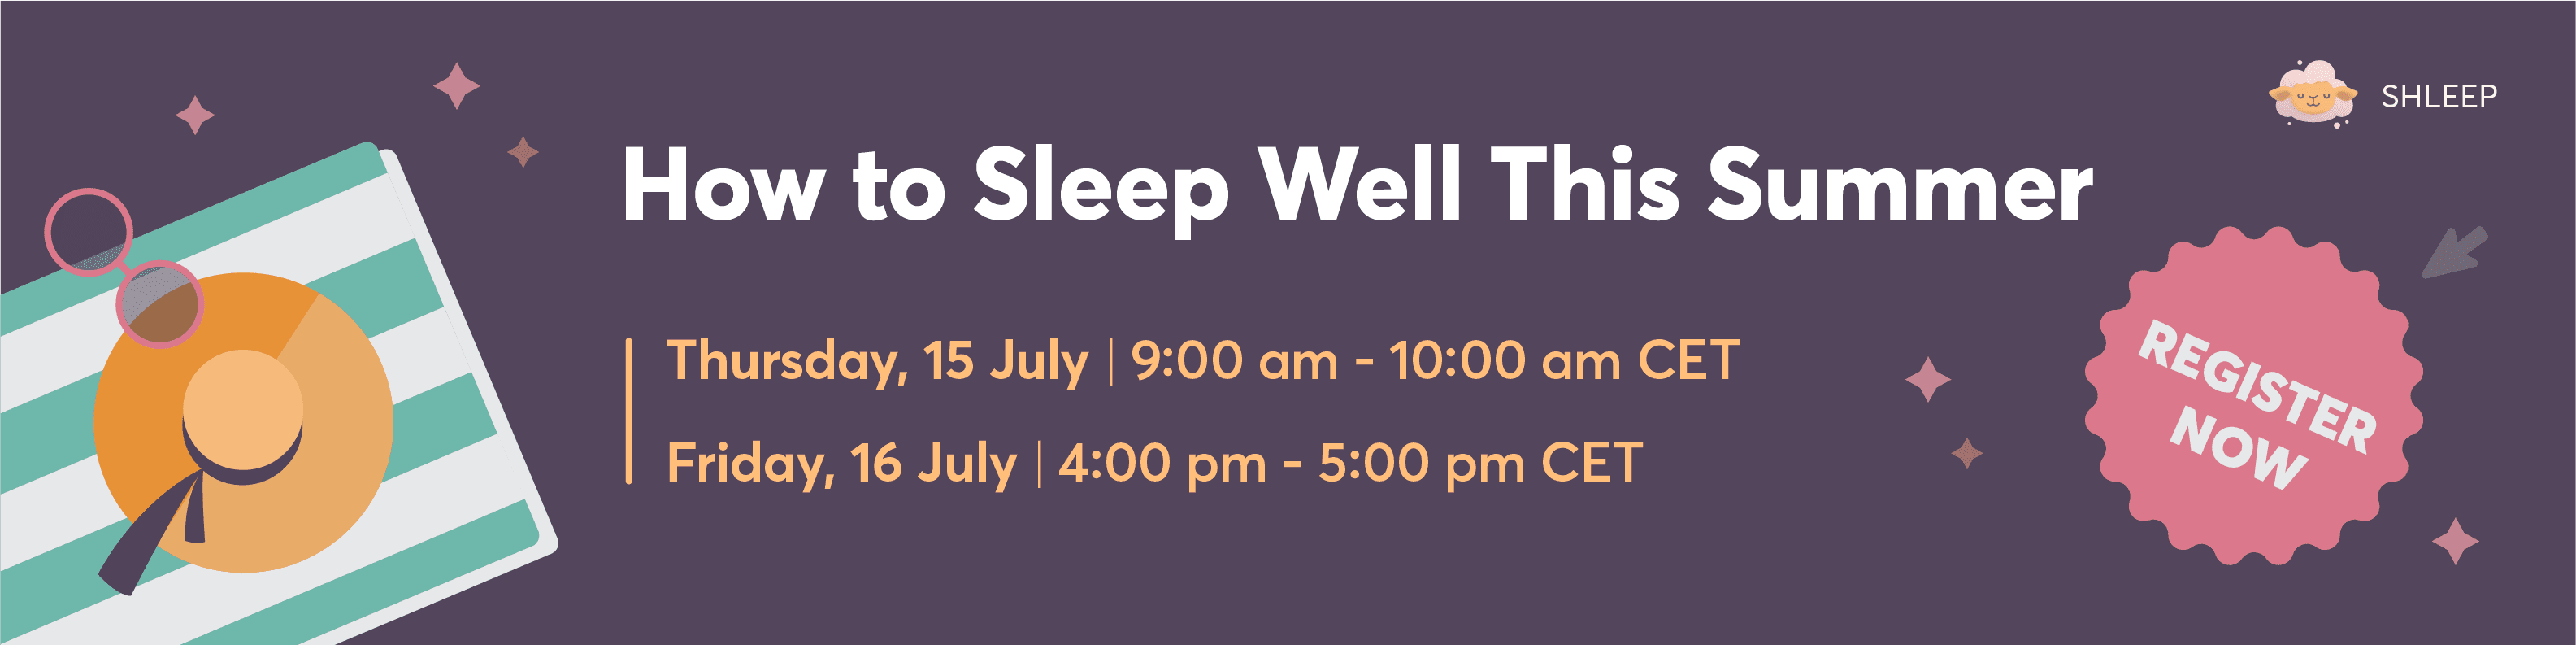 how to sleep well this summer